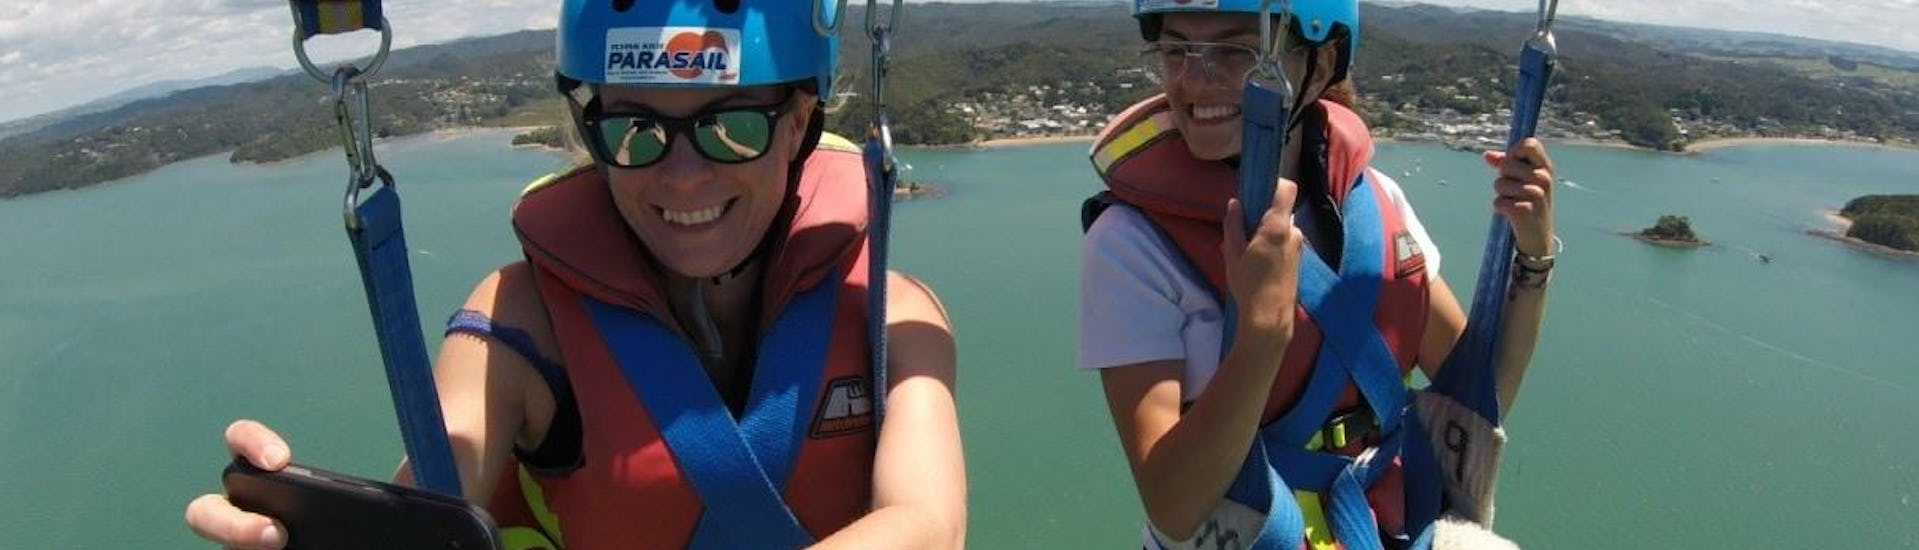 During the Parasailing in Paihia - For 2 People, two friends are enjoying the amazing views while being towed by a motorboat from Bay of Islands Parasail.